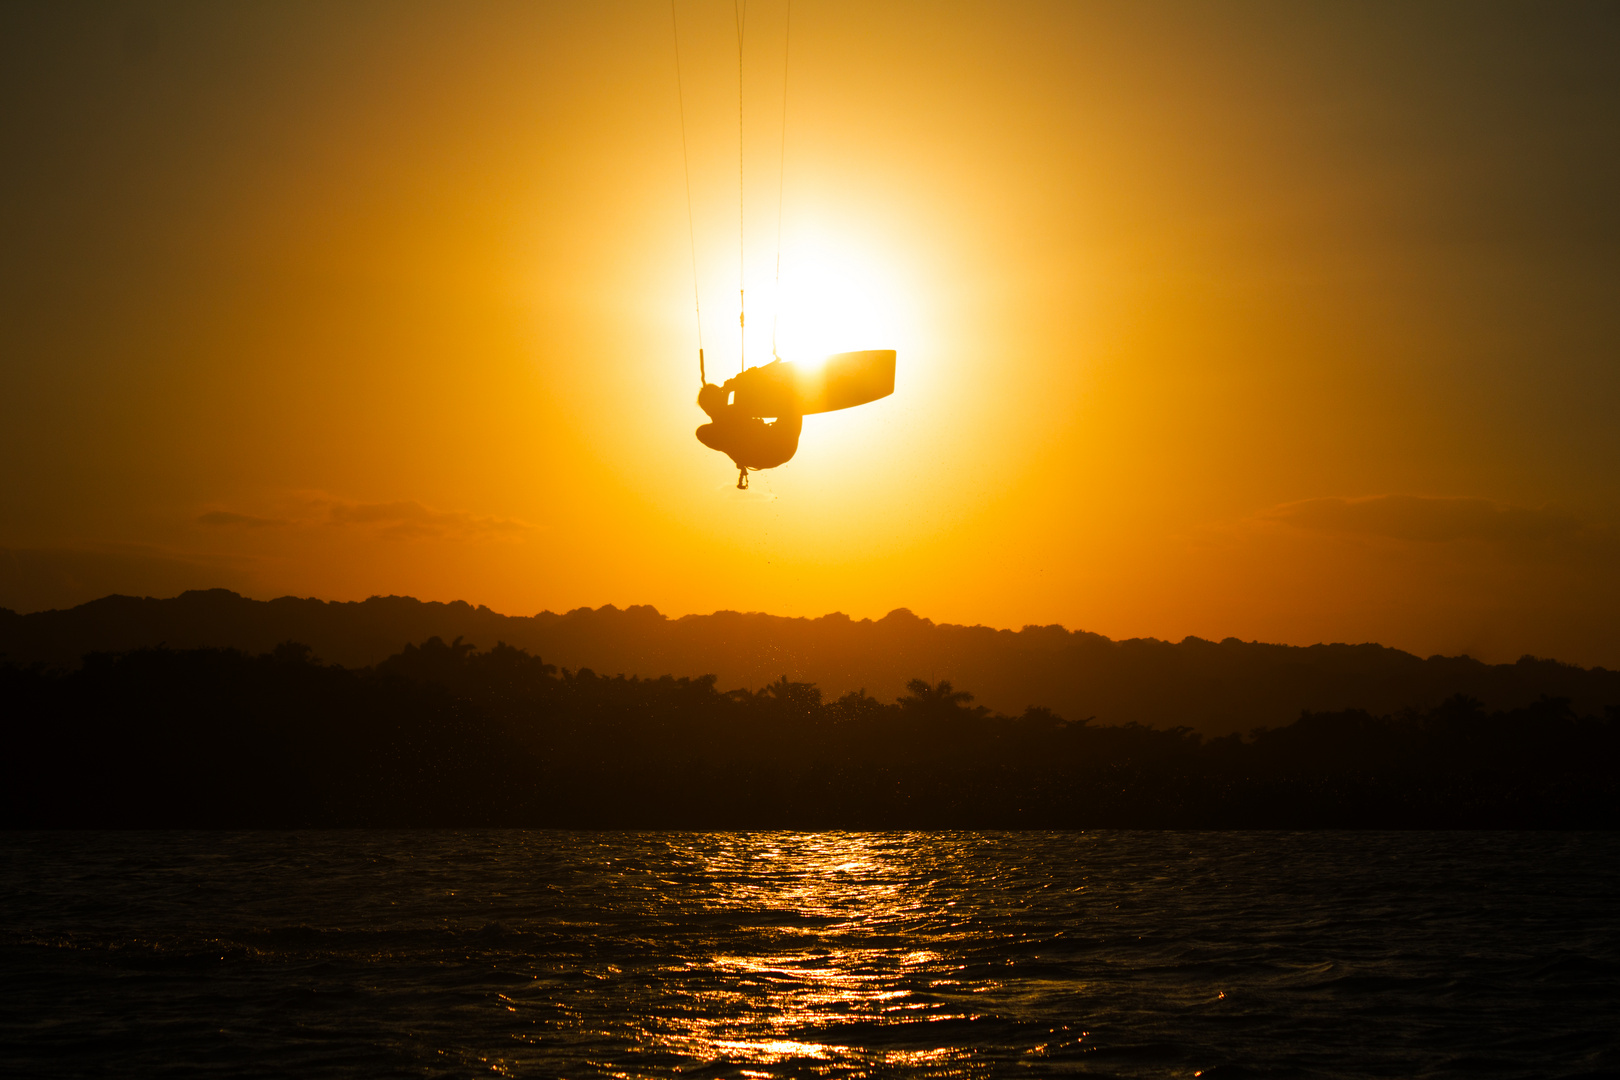 Flying in the Sunset